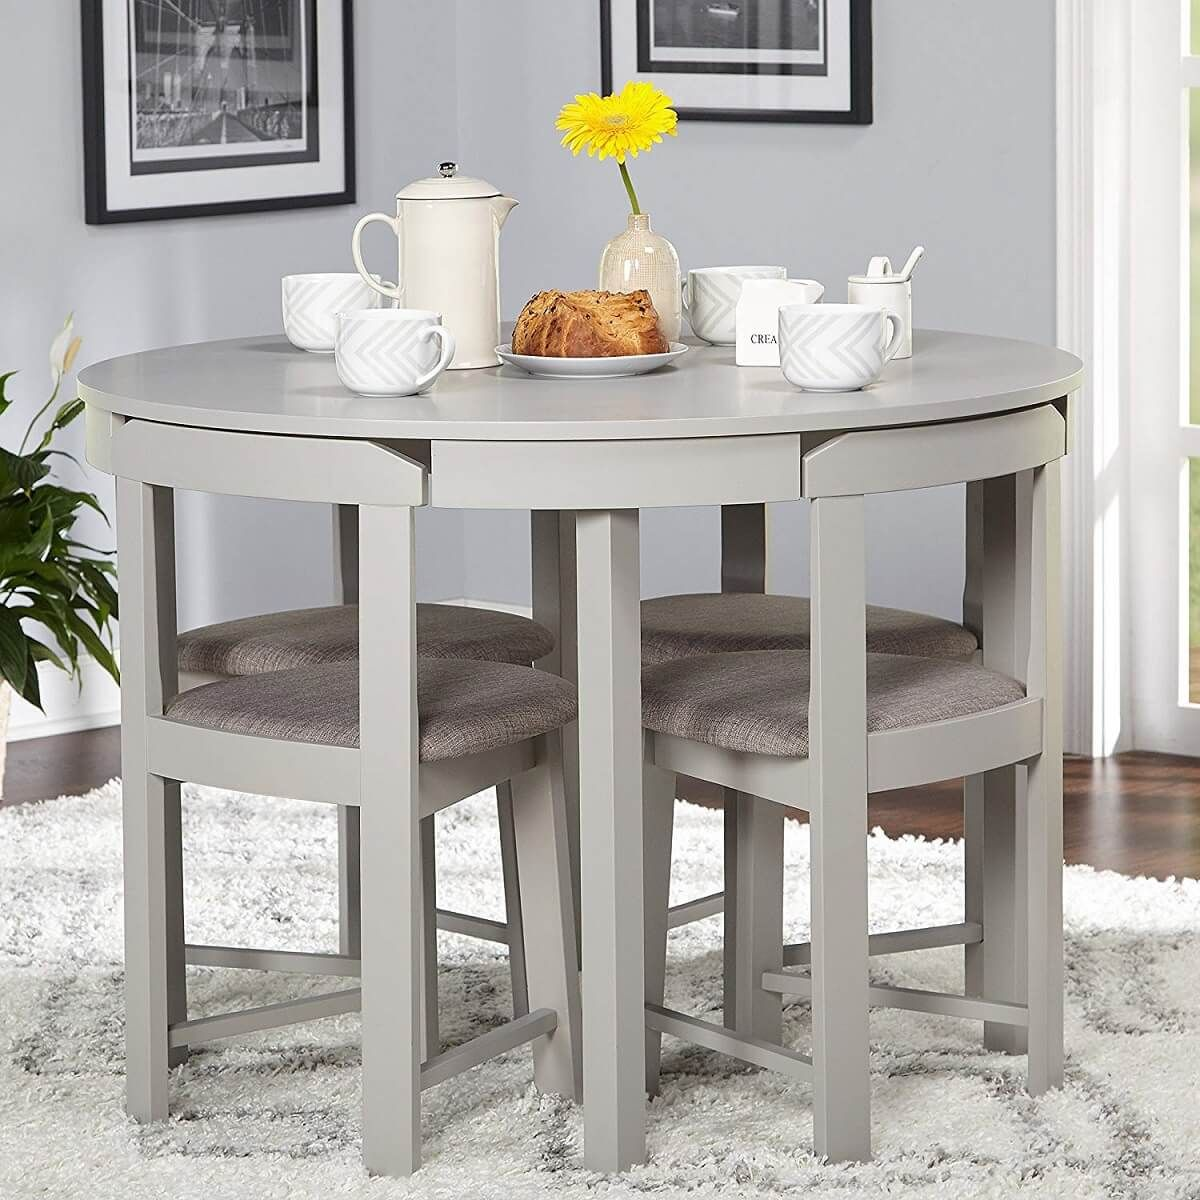 Five Piece Small Round Kitchen Table Space Saving Dining Table